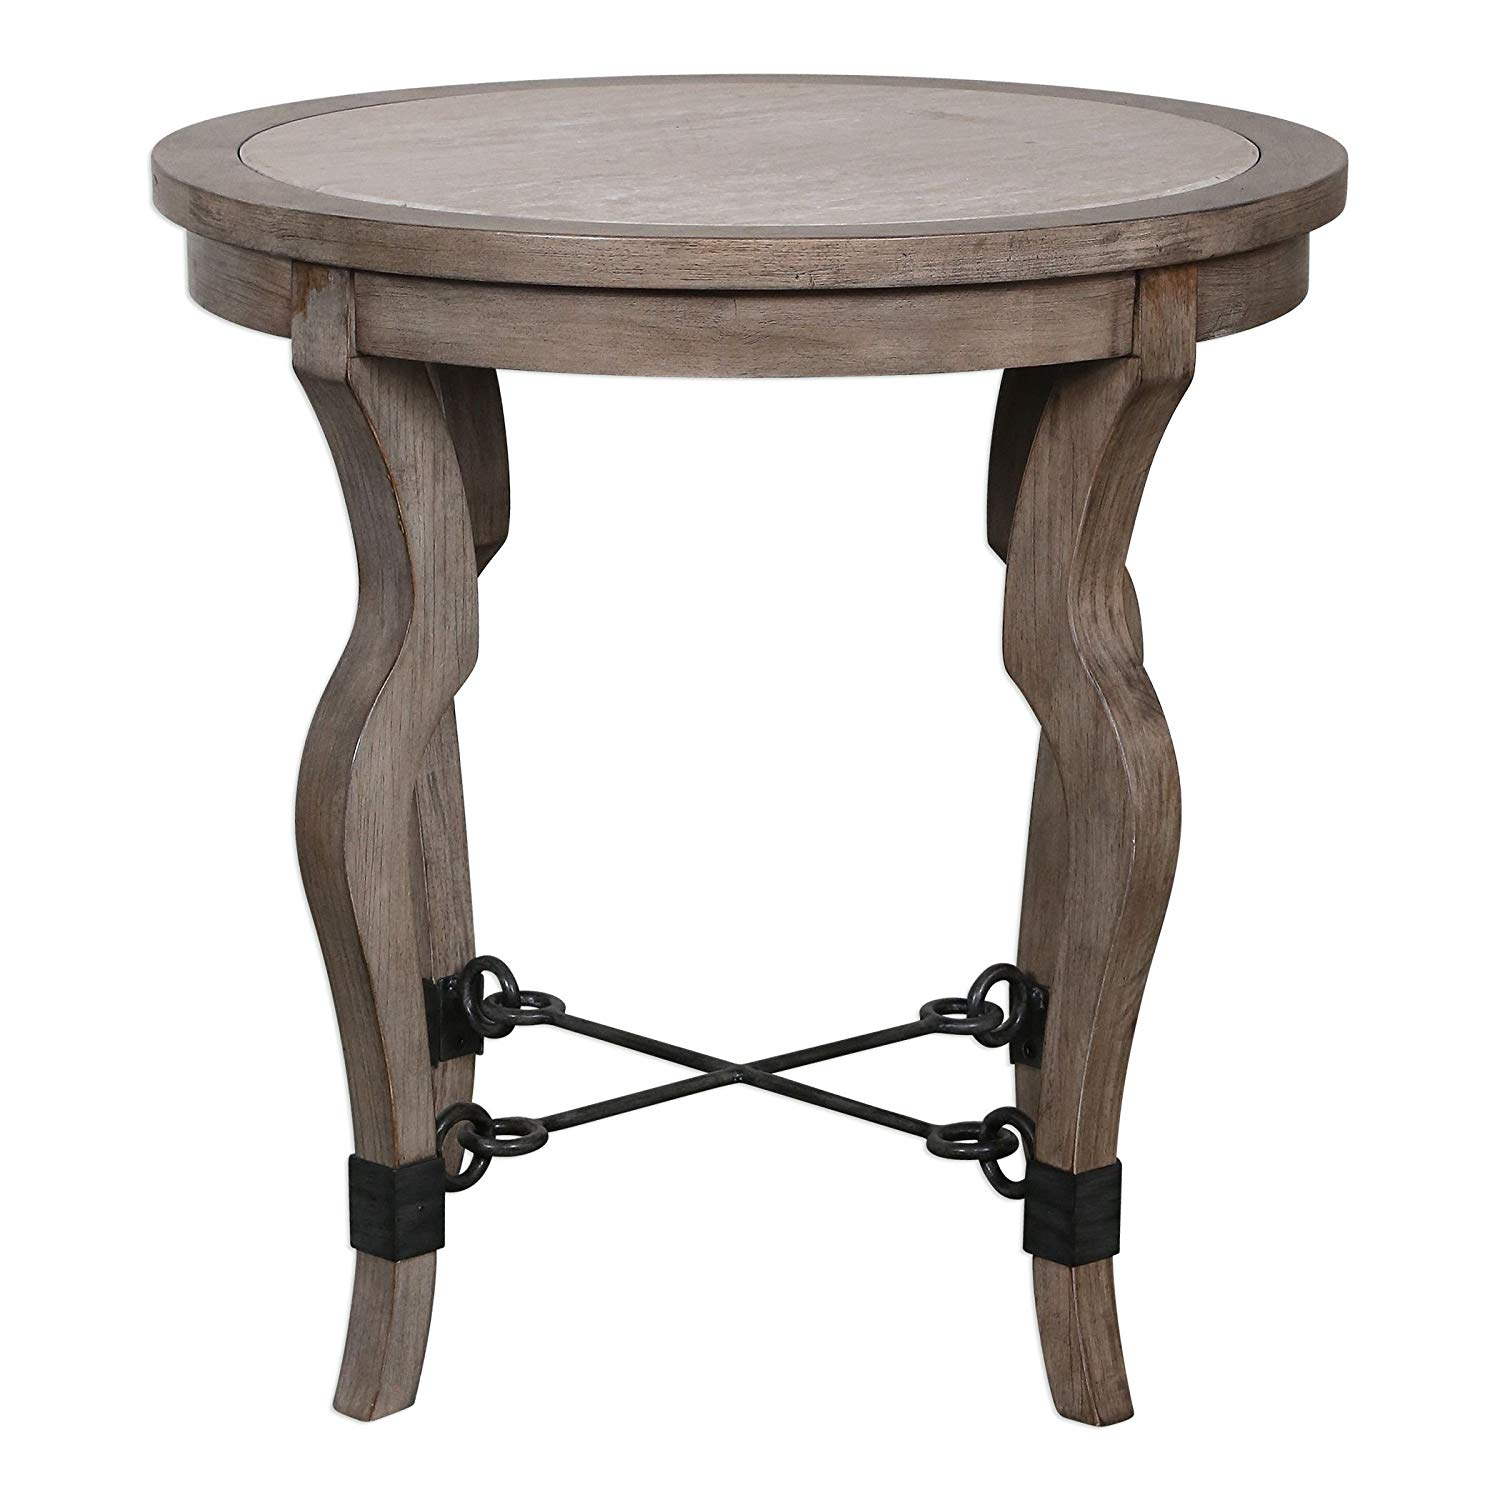 luxe curved weathered wood round accent table driftwood travertine inlay light stone kitchen dining narrow black foot long sofa high top diy cocktail white side with shelf target